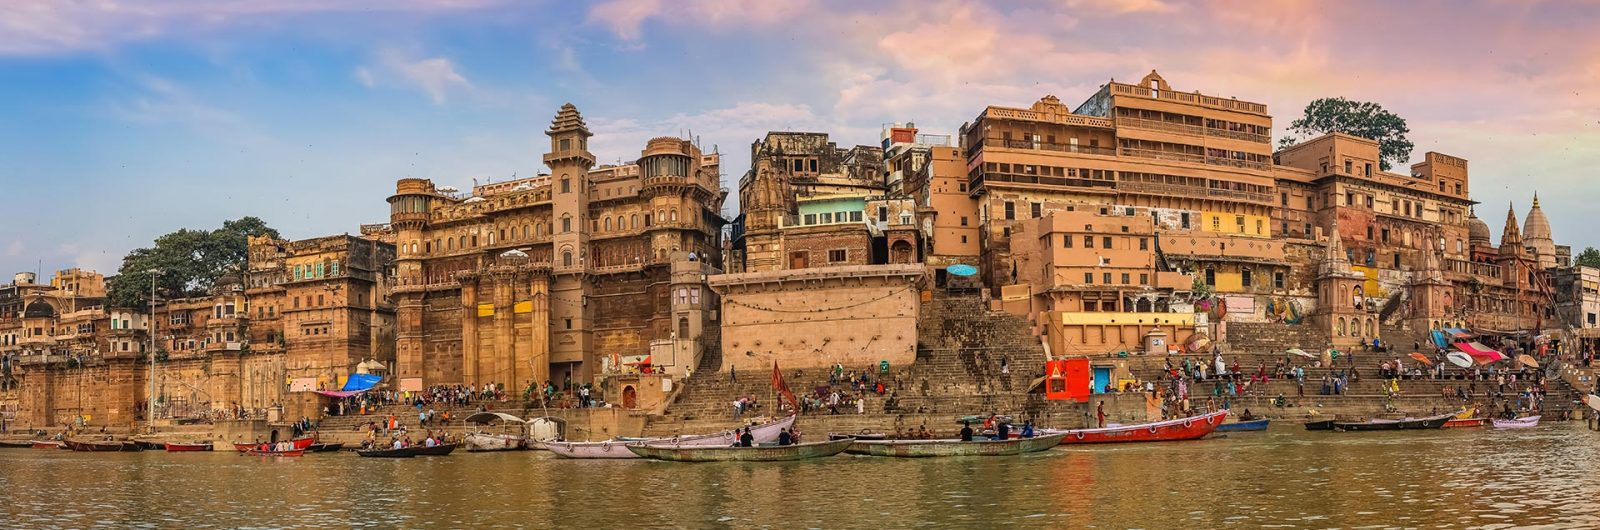 Splendors of India & the Ganges River